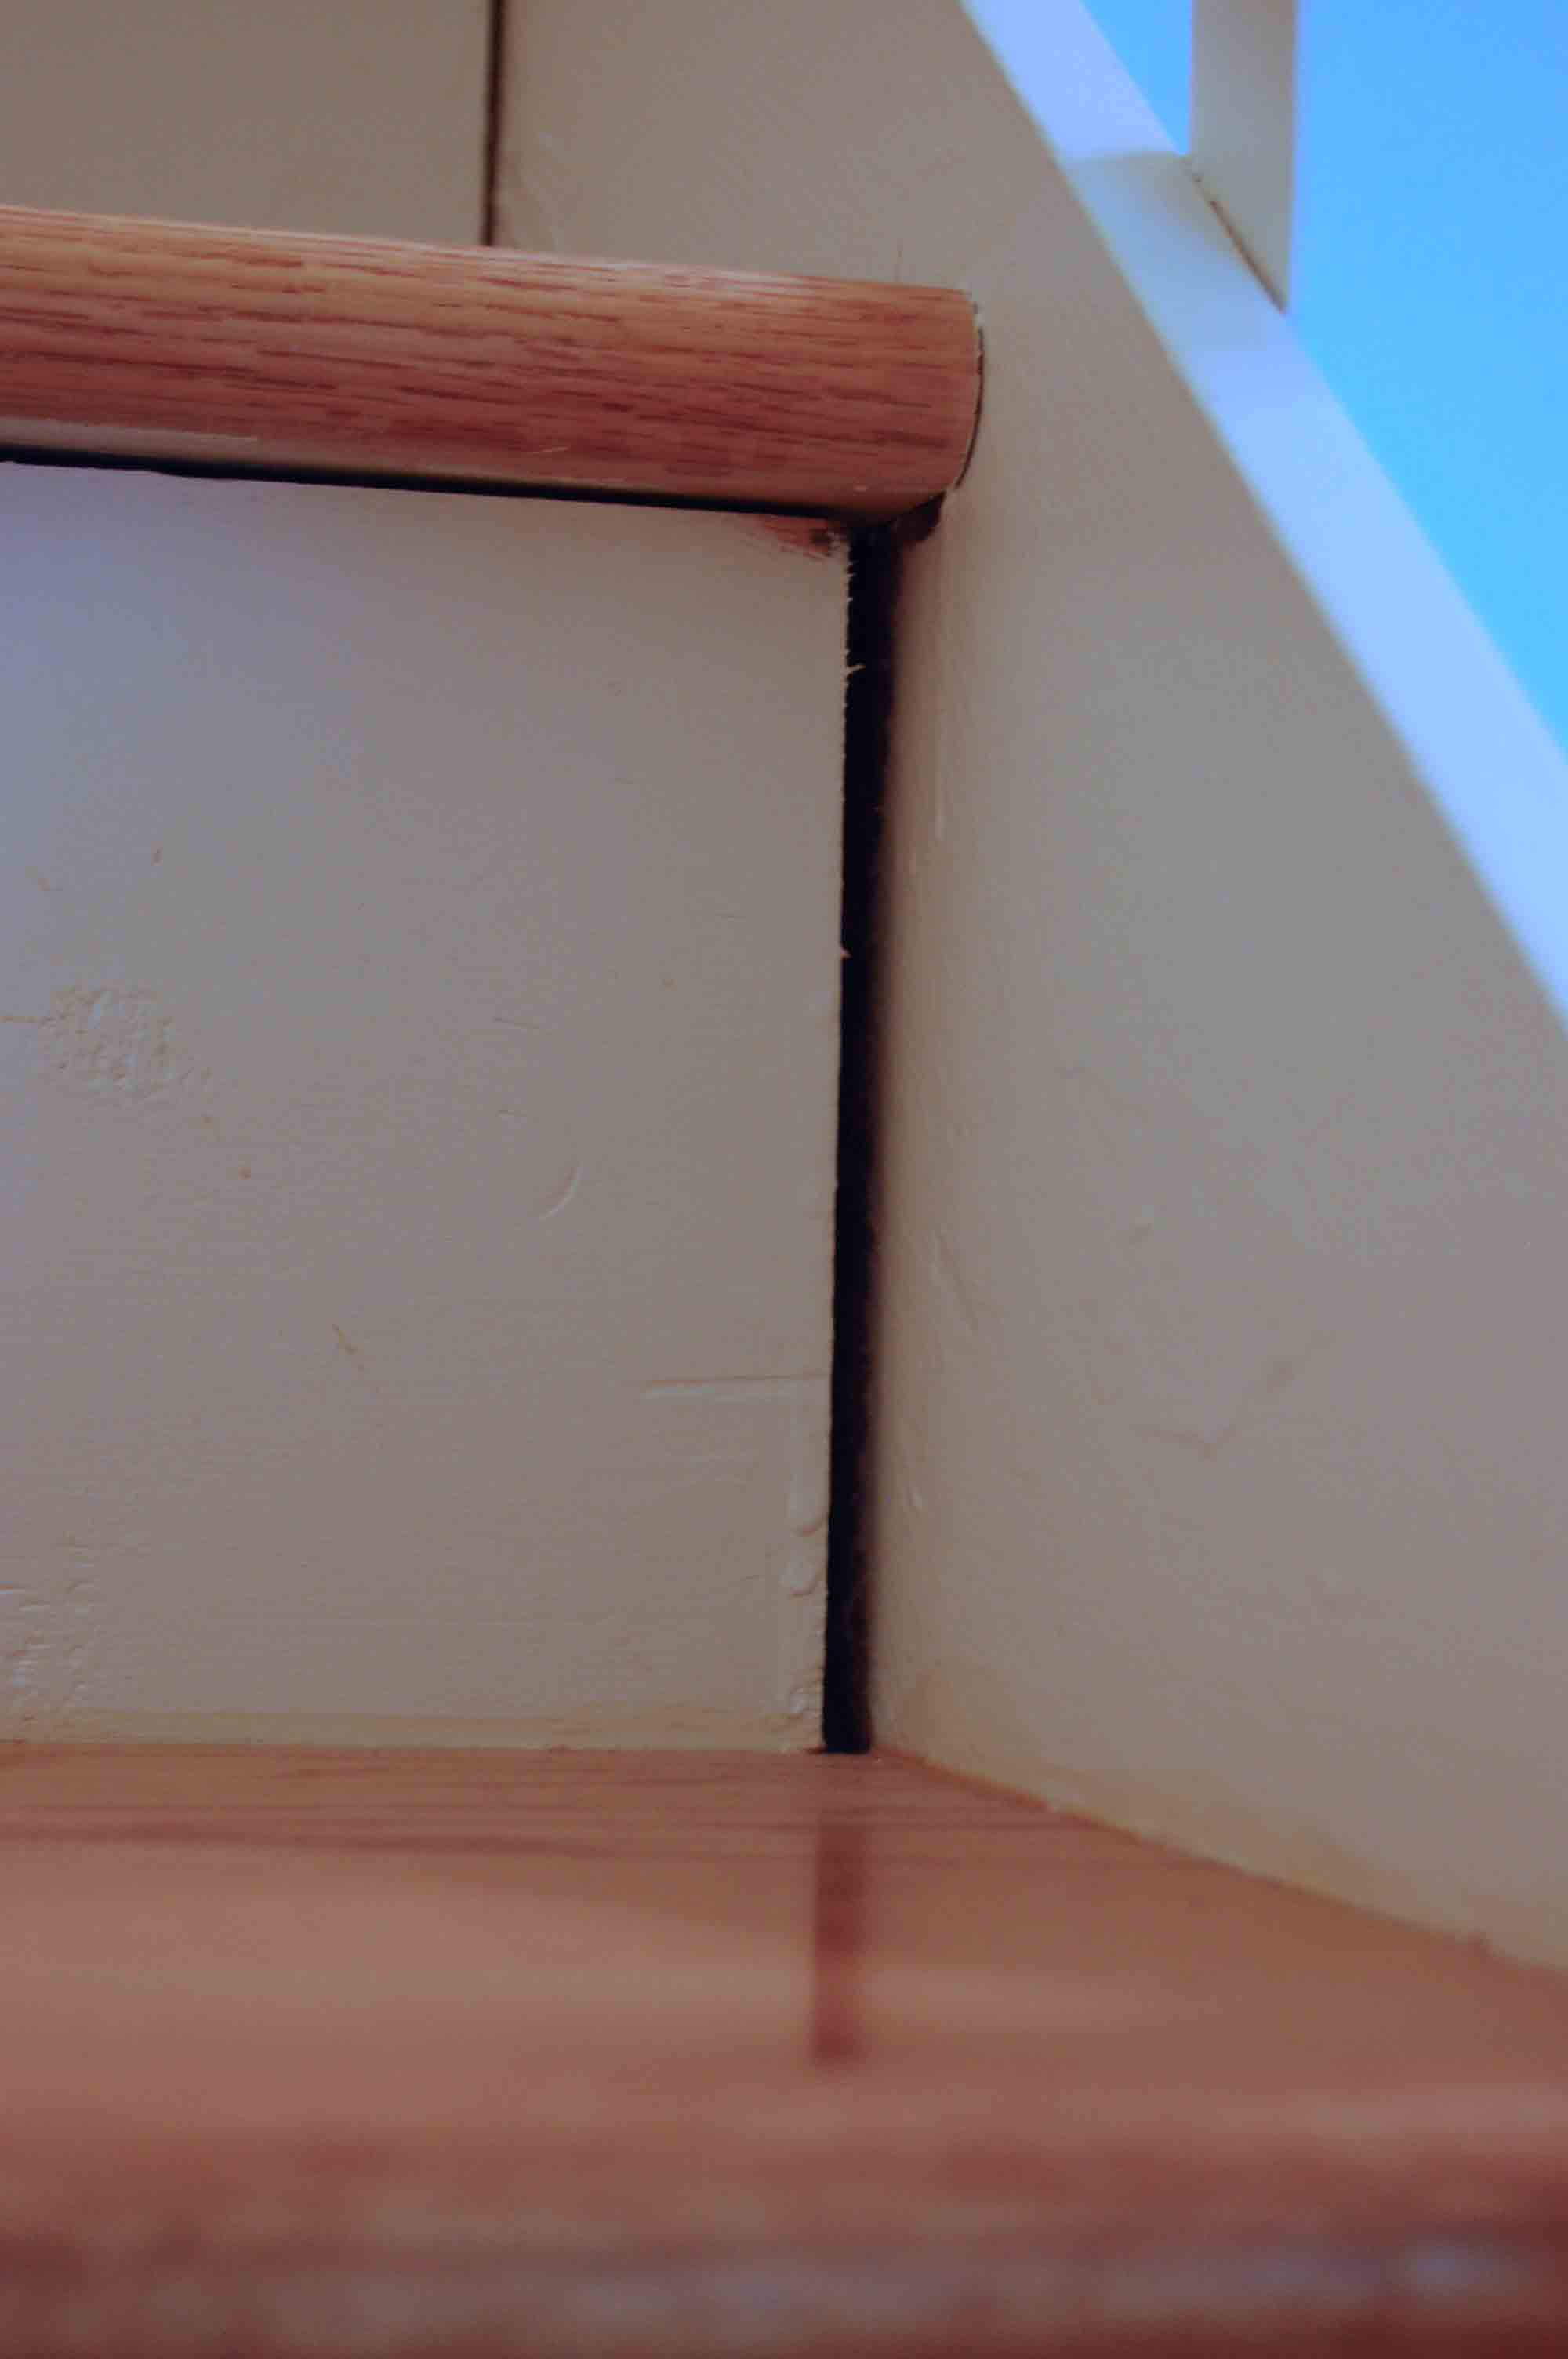 Fix Gaps In Stairs Stair Gap1 Diy ...